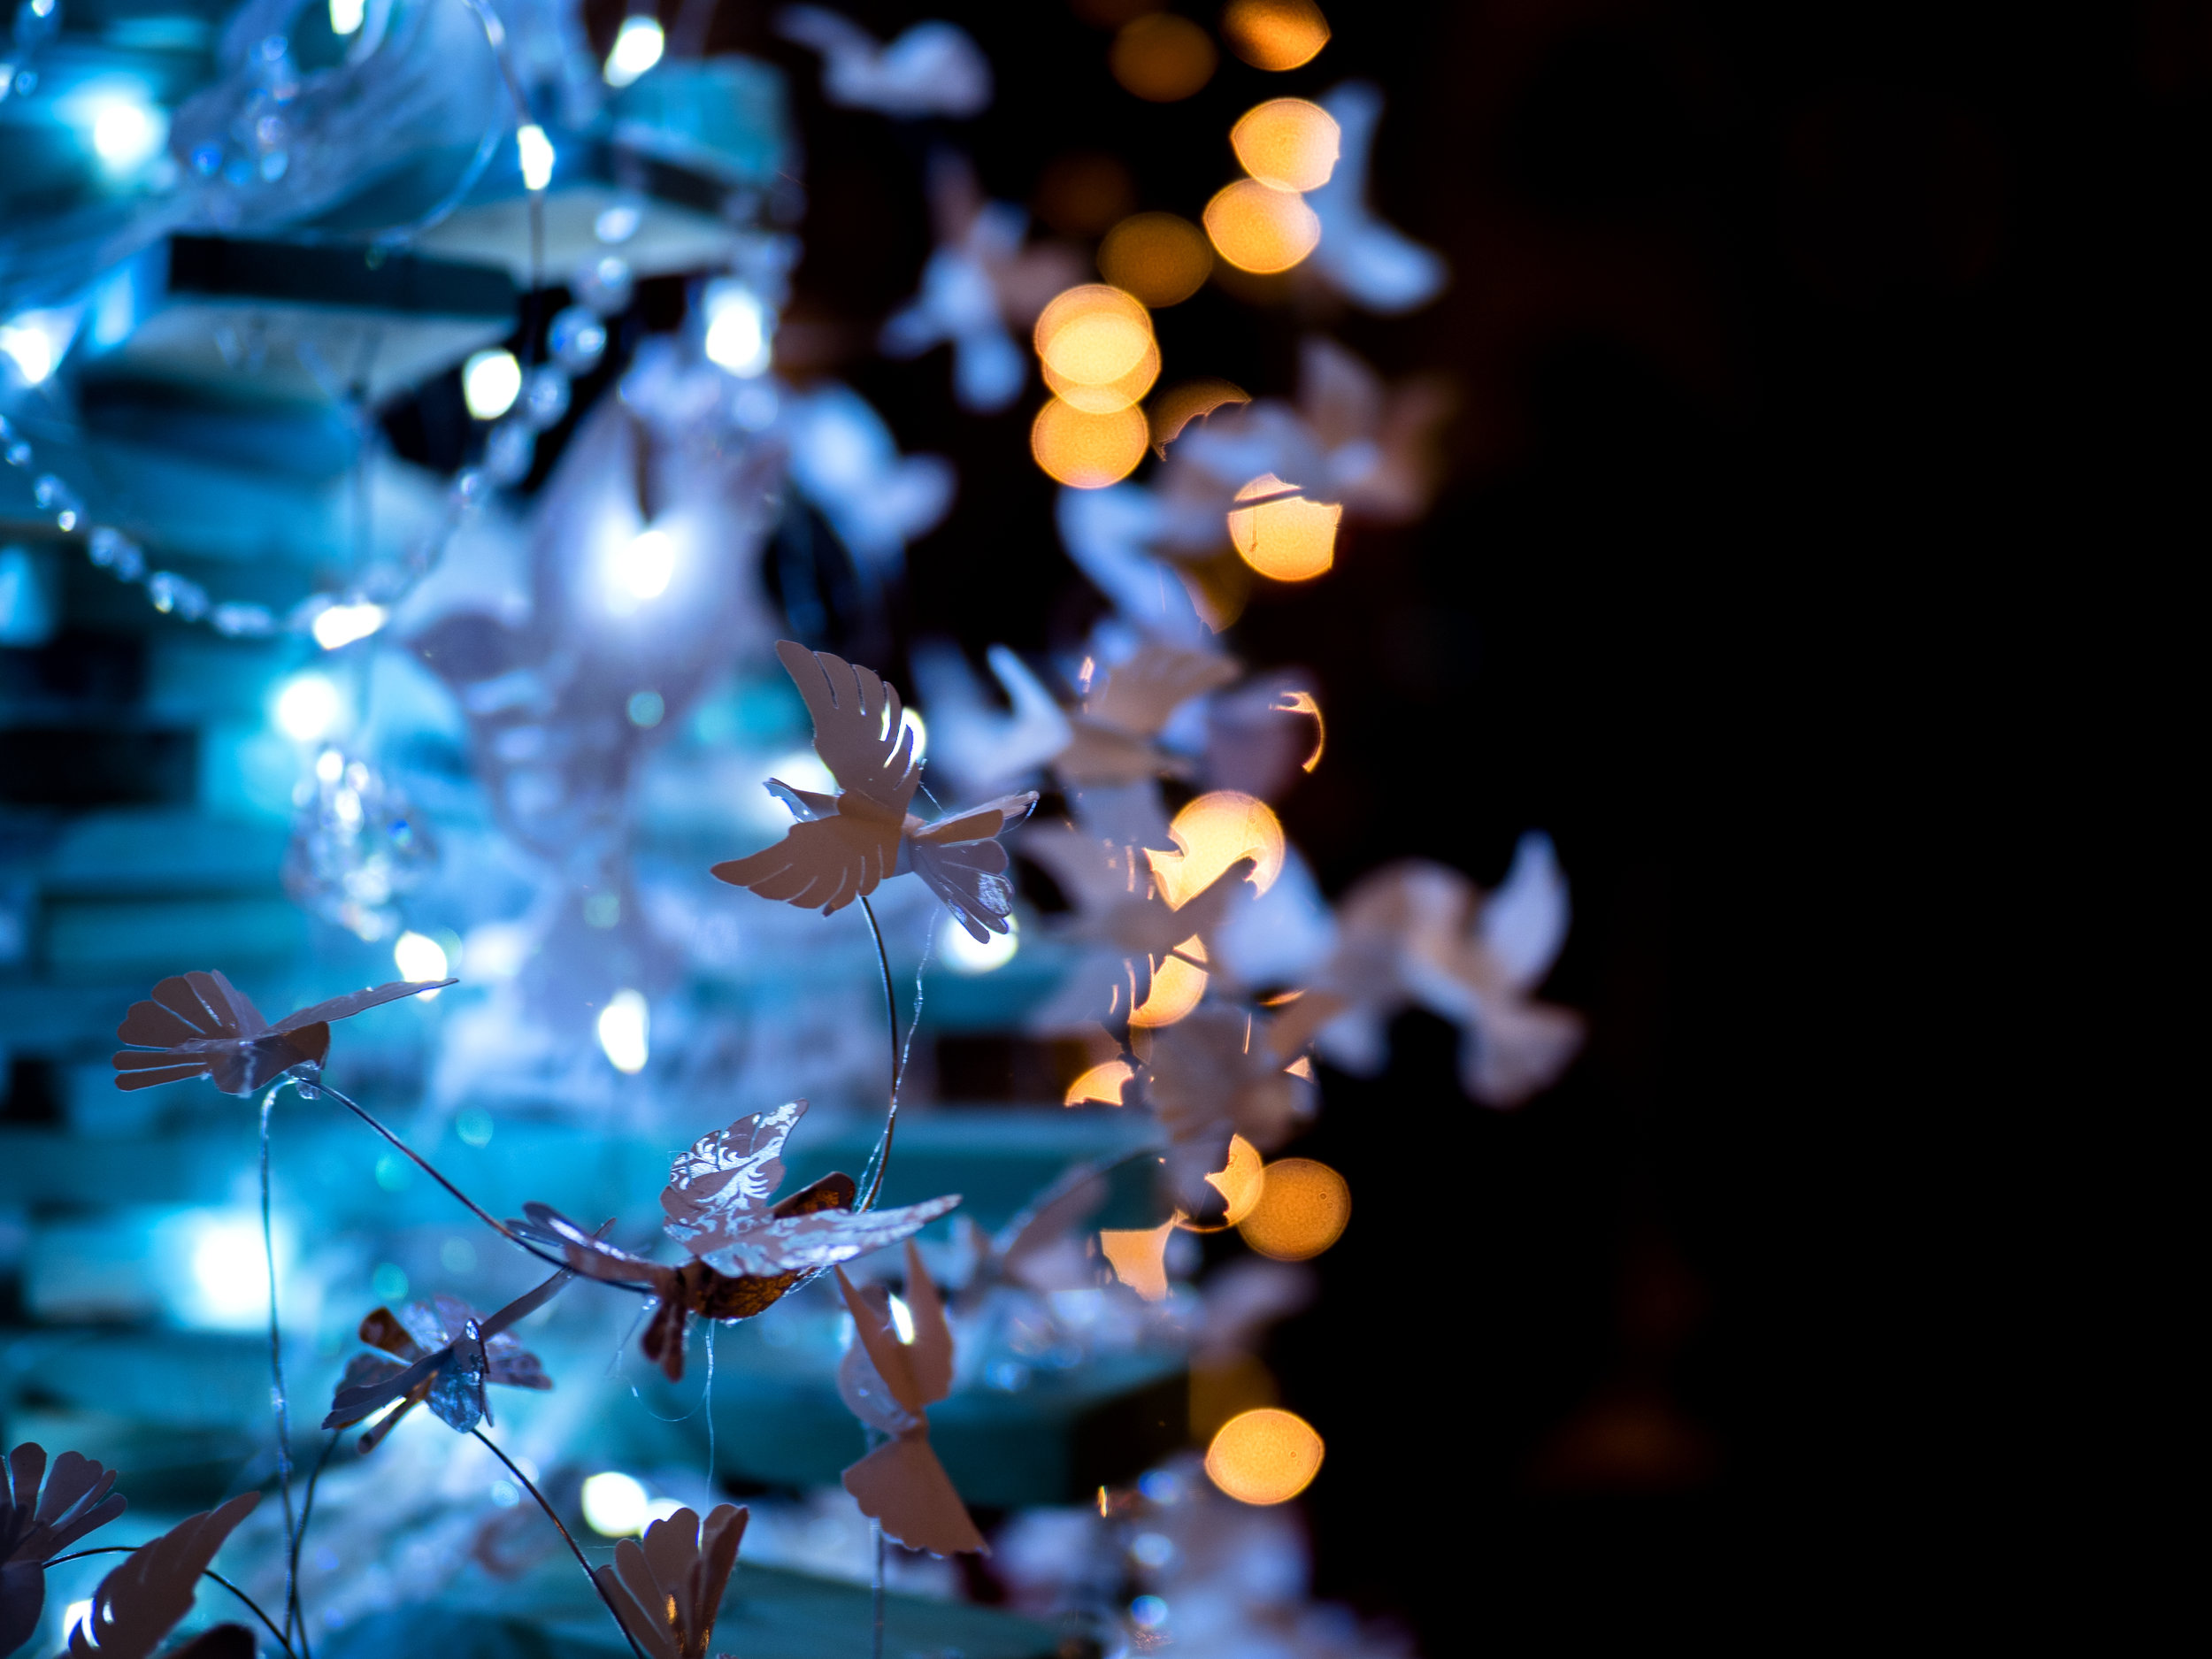 Musings by the Glass - Eggnog and Malasadas - Christmas Tree Lights and Bokeh